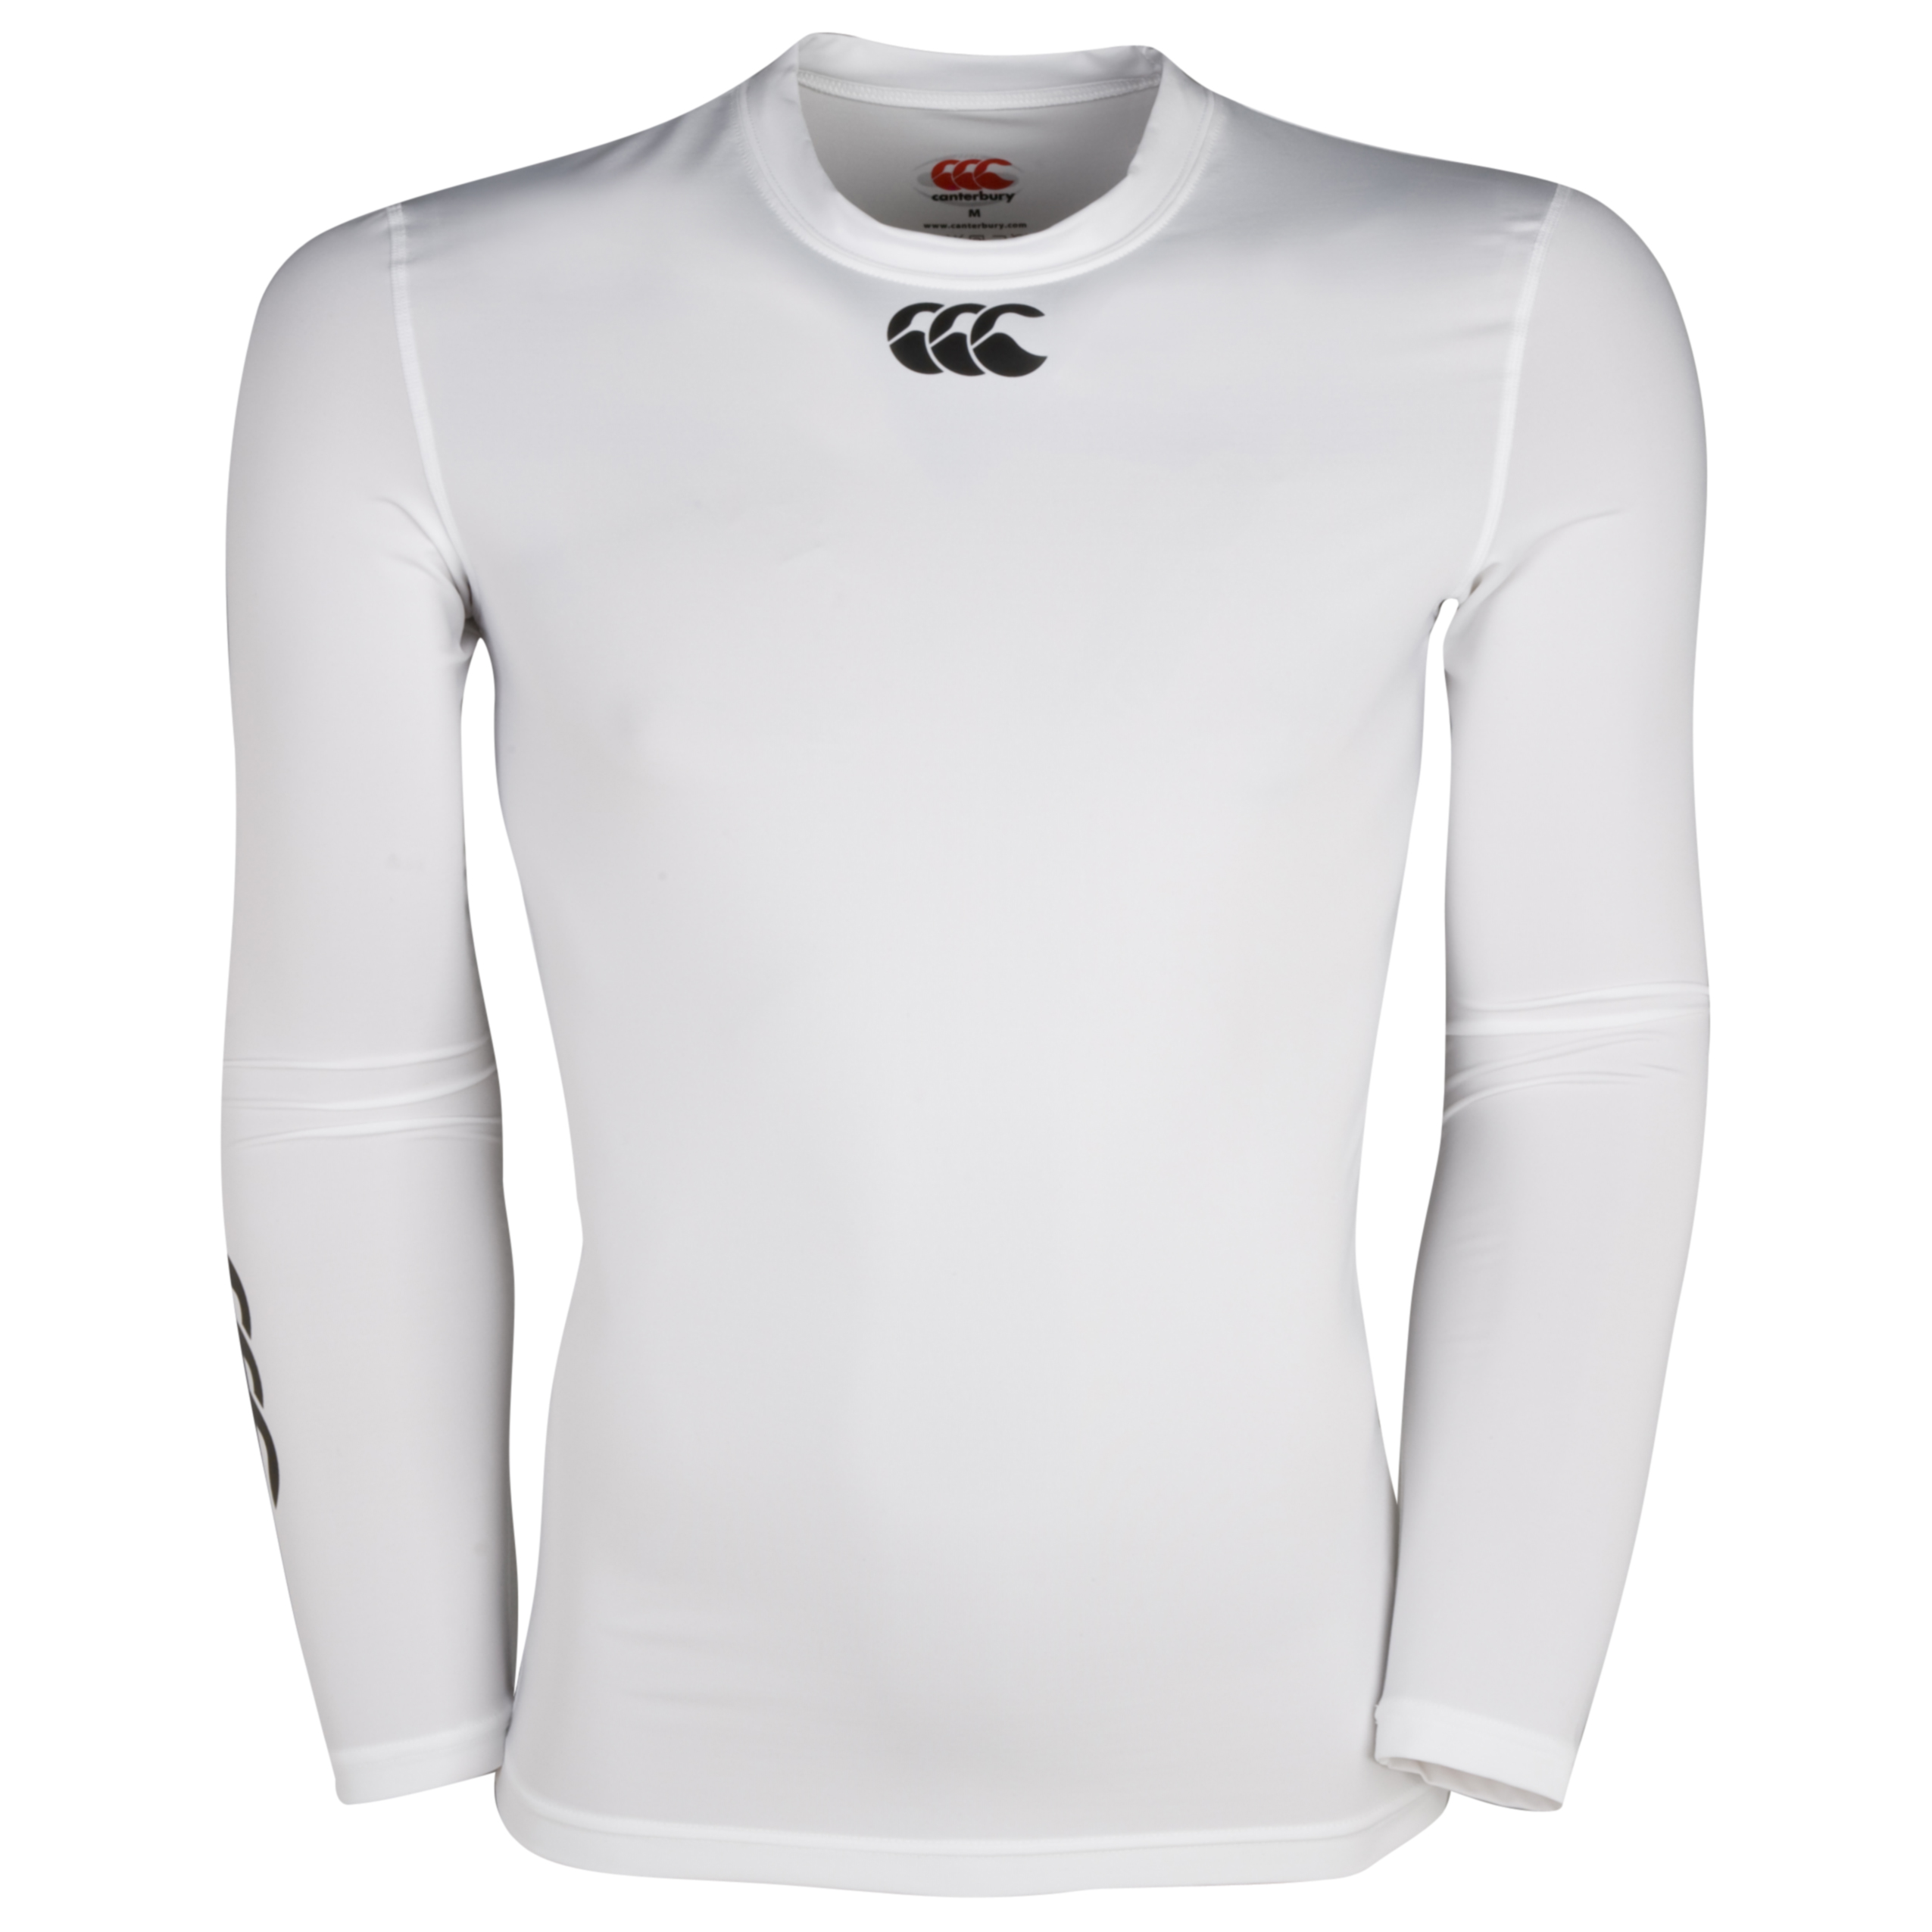 Canterbury Hot Long Sleeve Baselayer Top - White